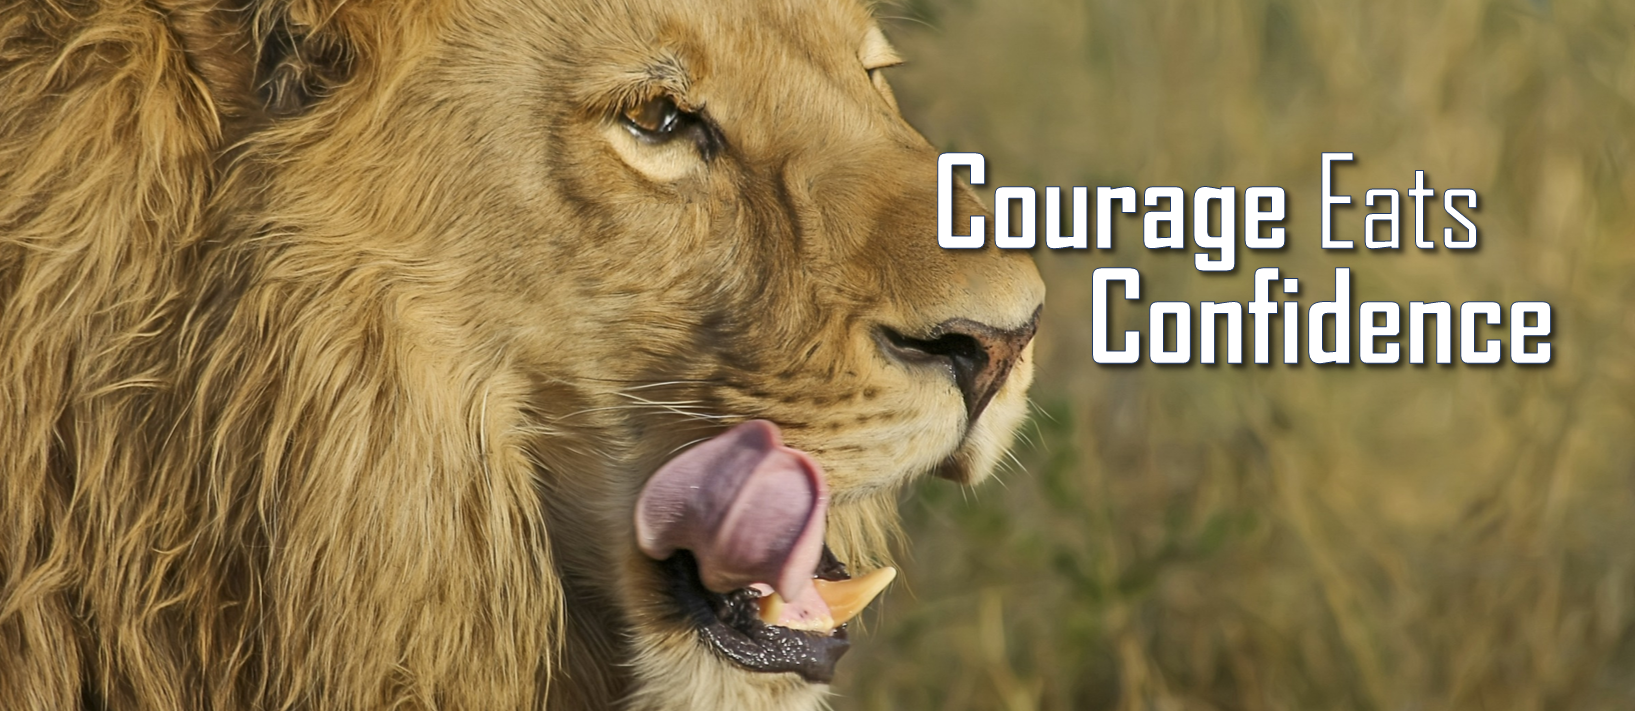 Courage Eats Confidence image.png